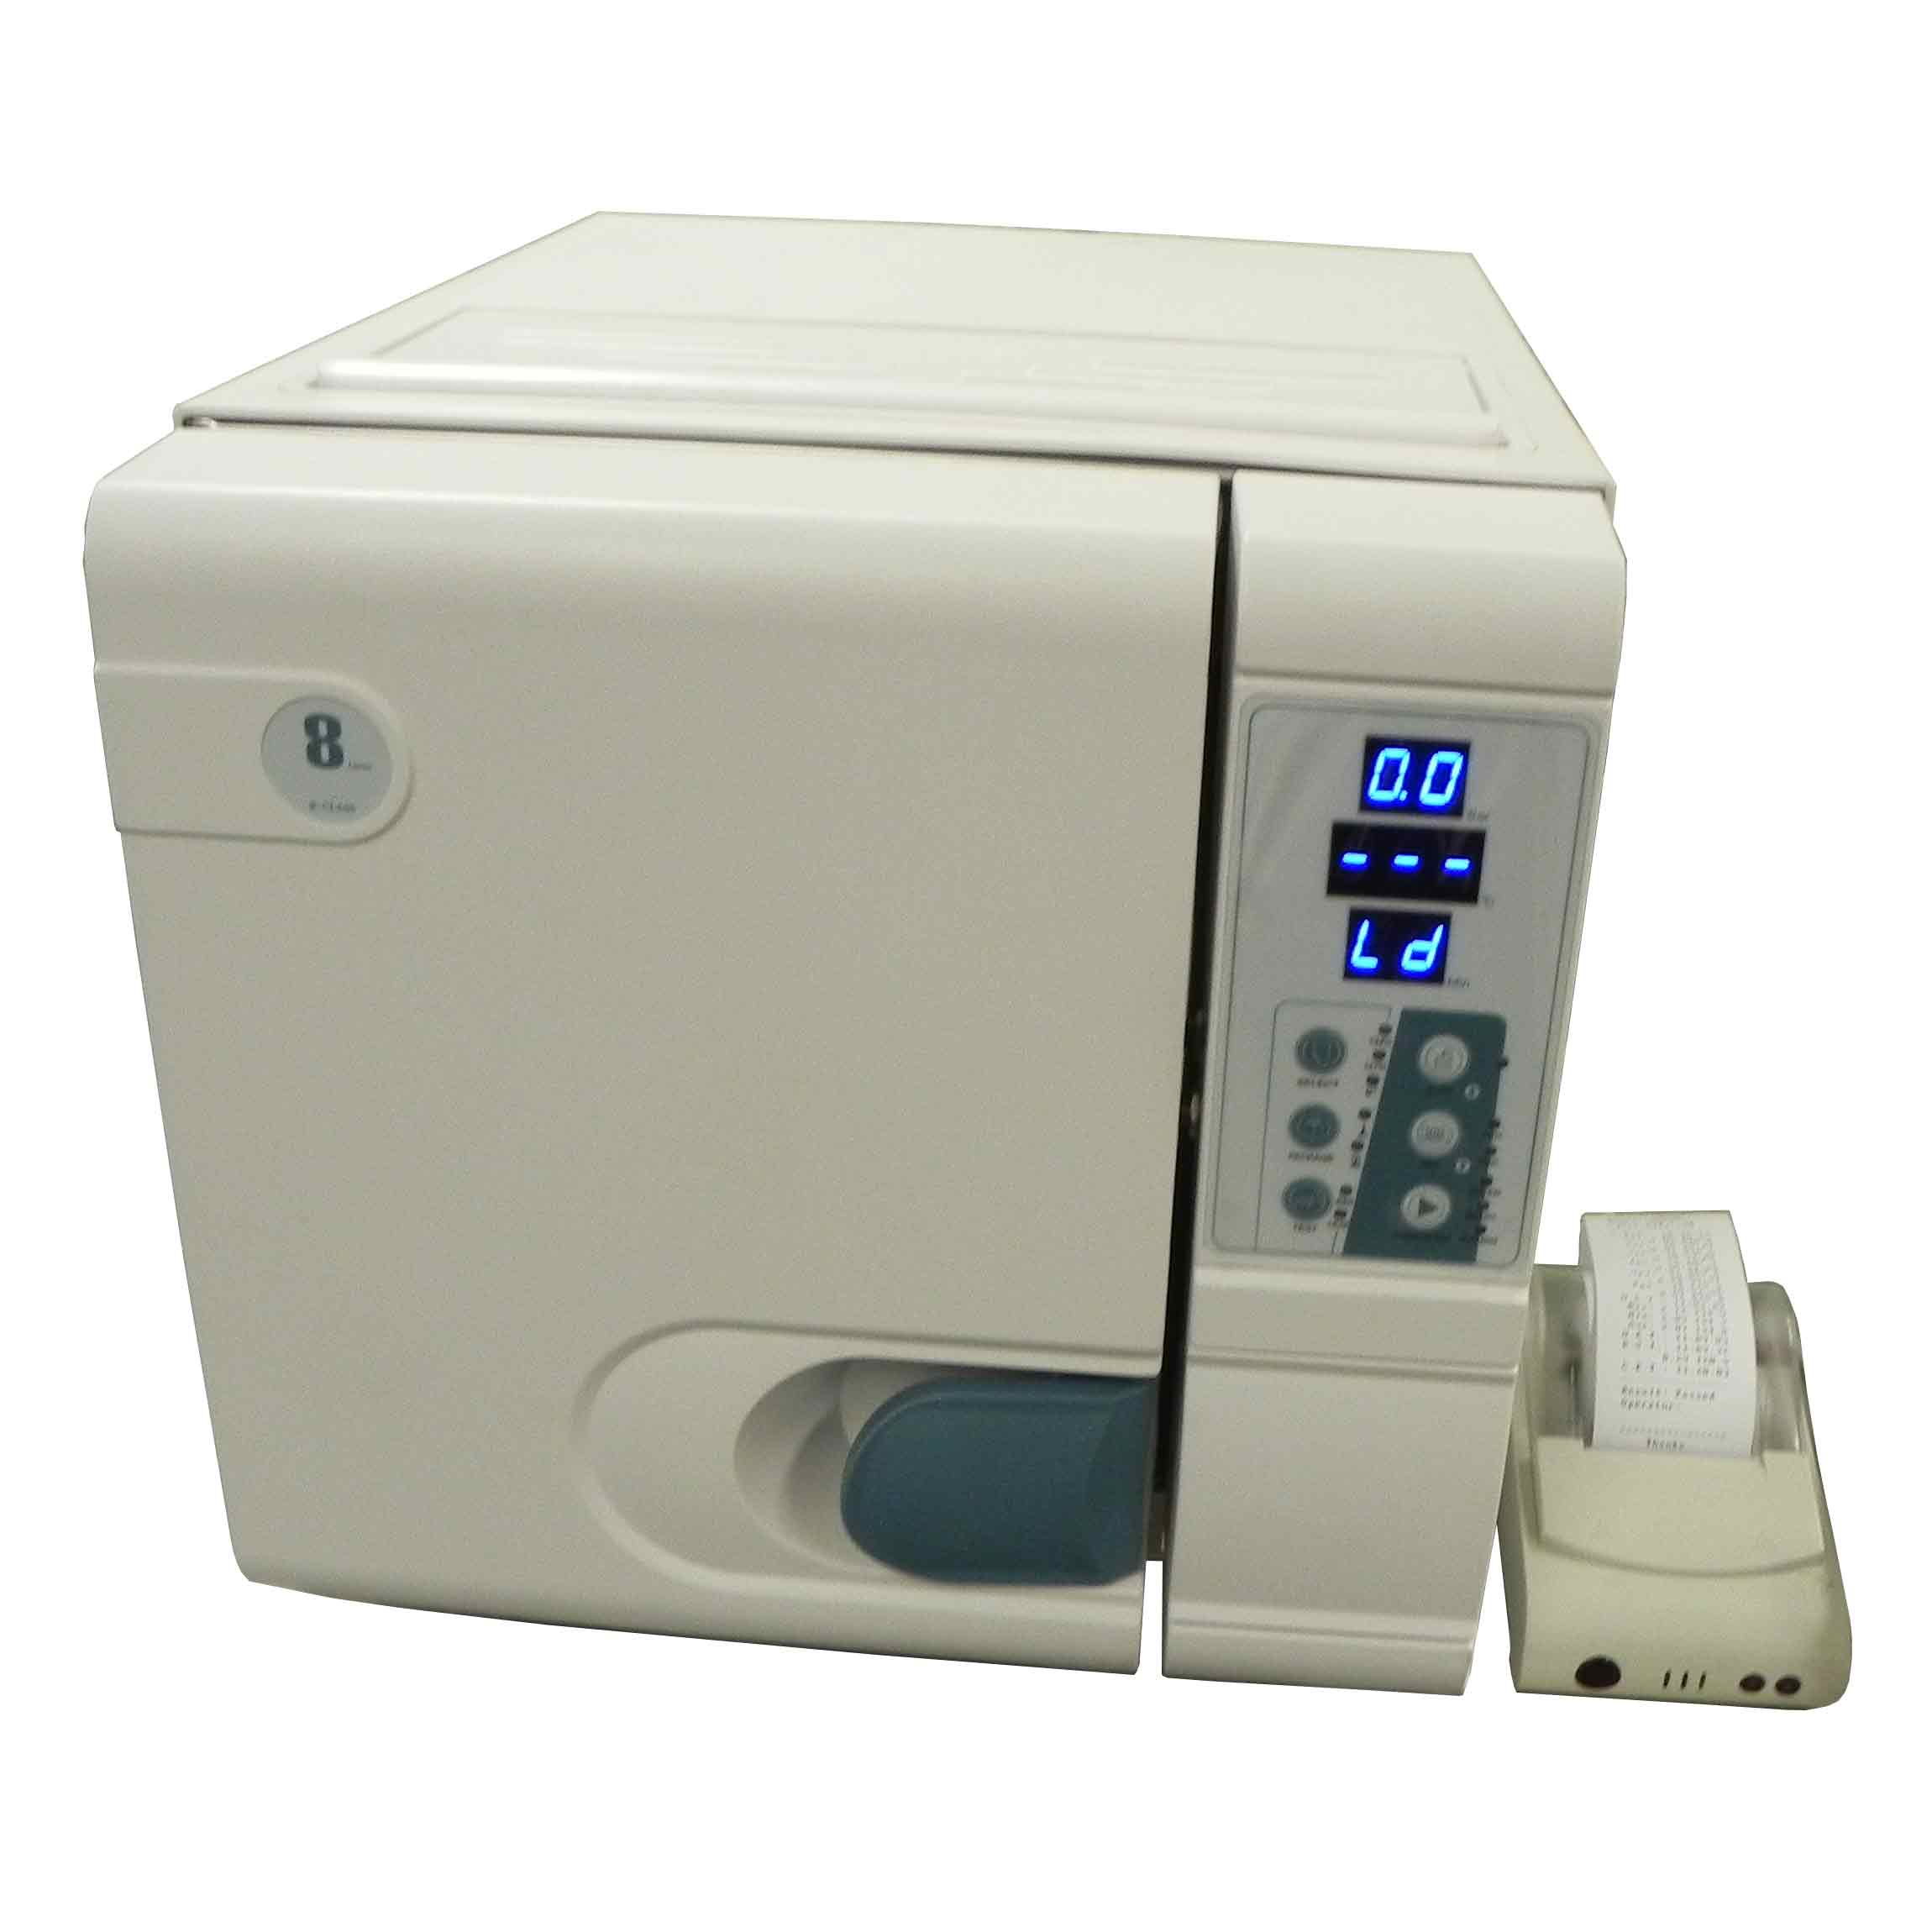 Autoclave sterilisers uv sanitisers capital salon supplies for 3 methods of sterilization in the salon